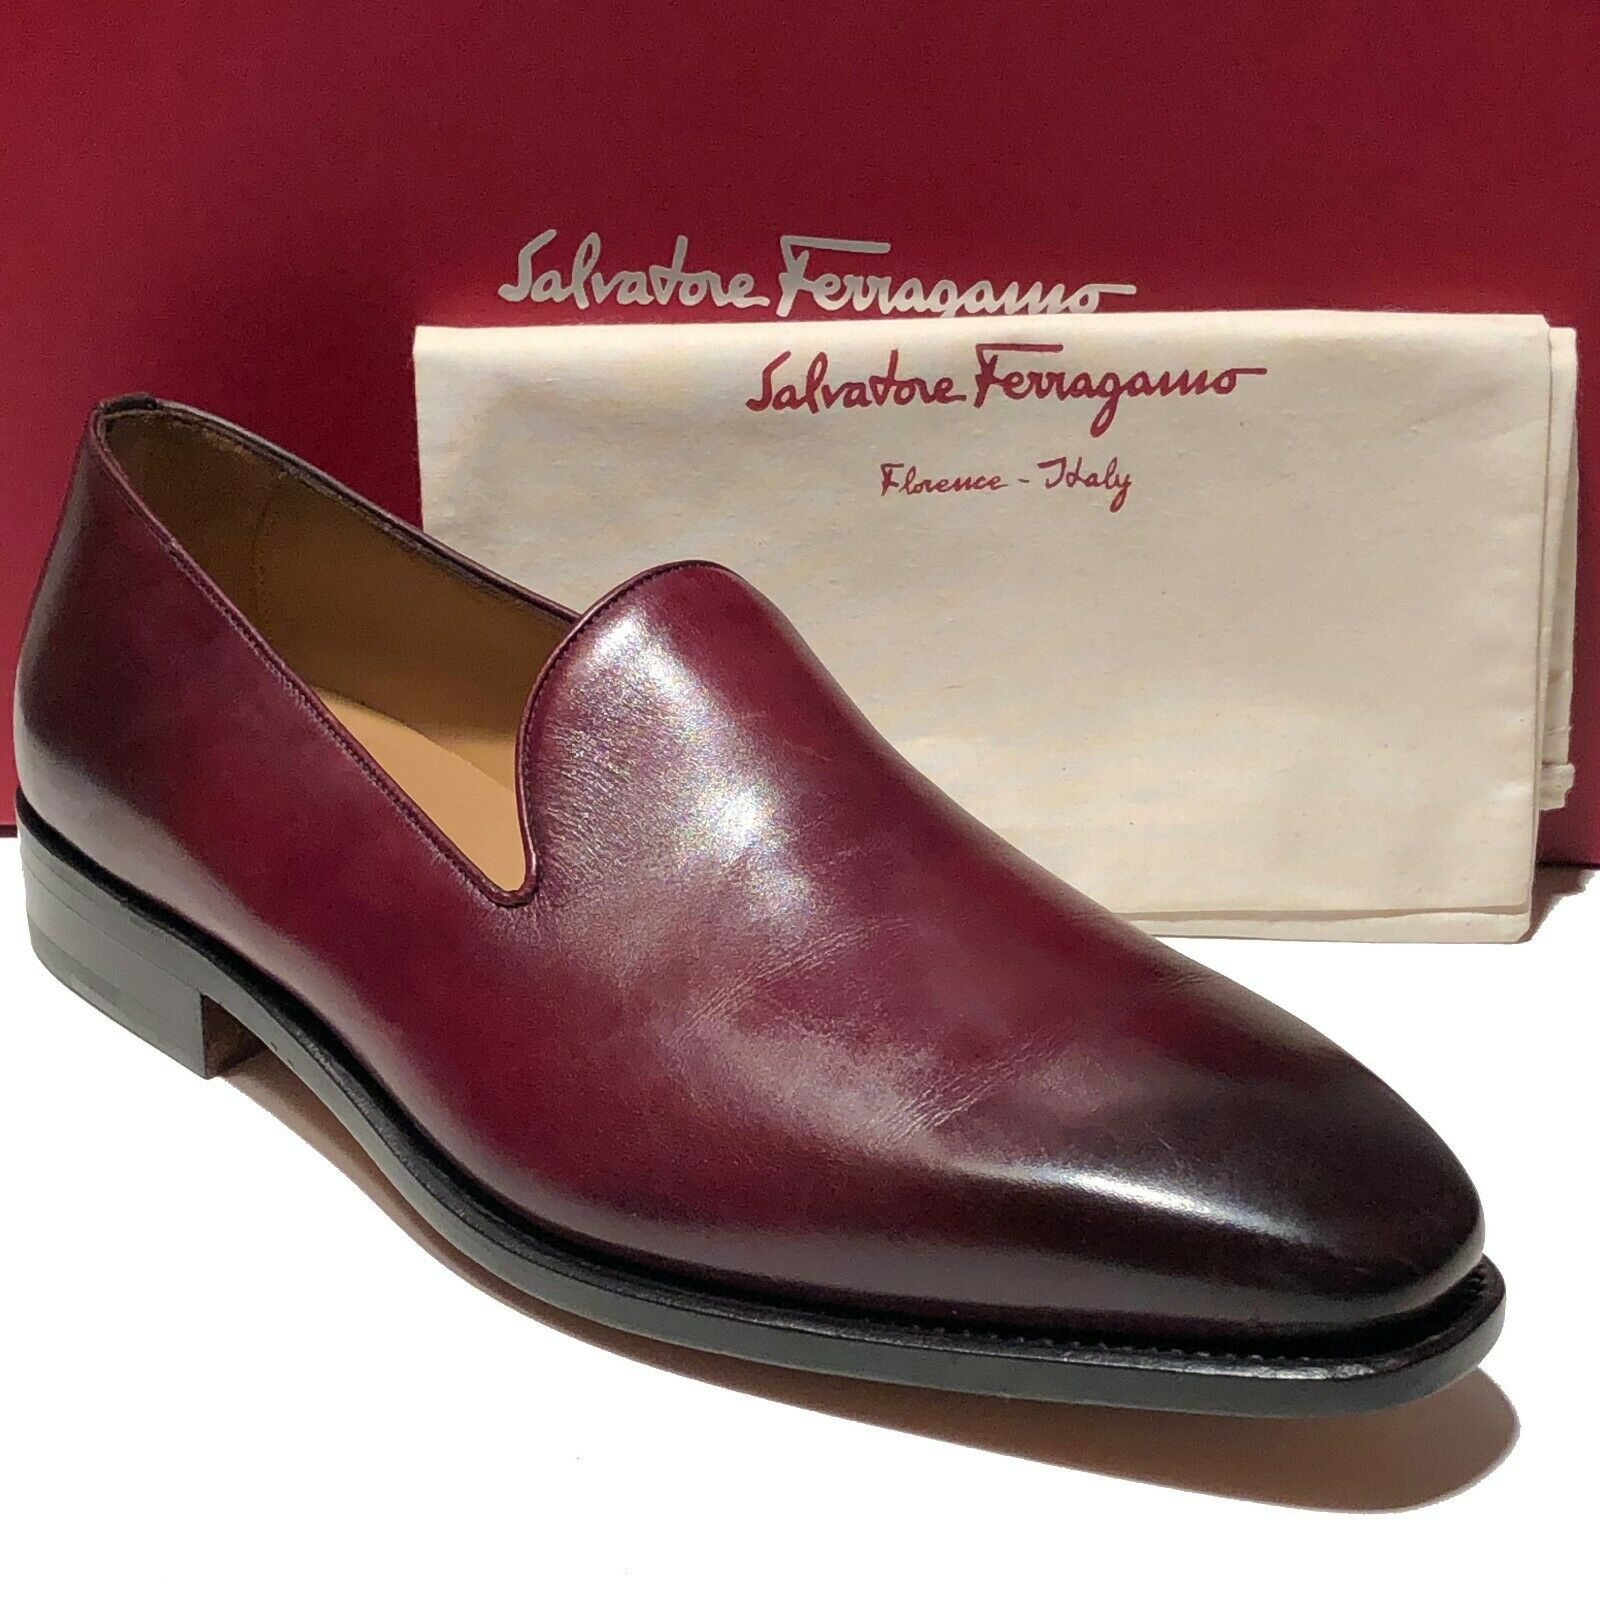 Ferragamo Tramezza new shoes Leather Loafers 8.5 Red Men's shoes Brown Casual